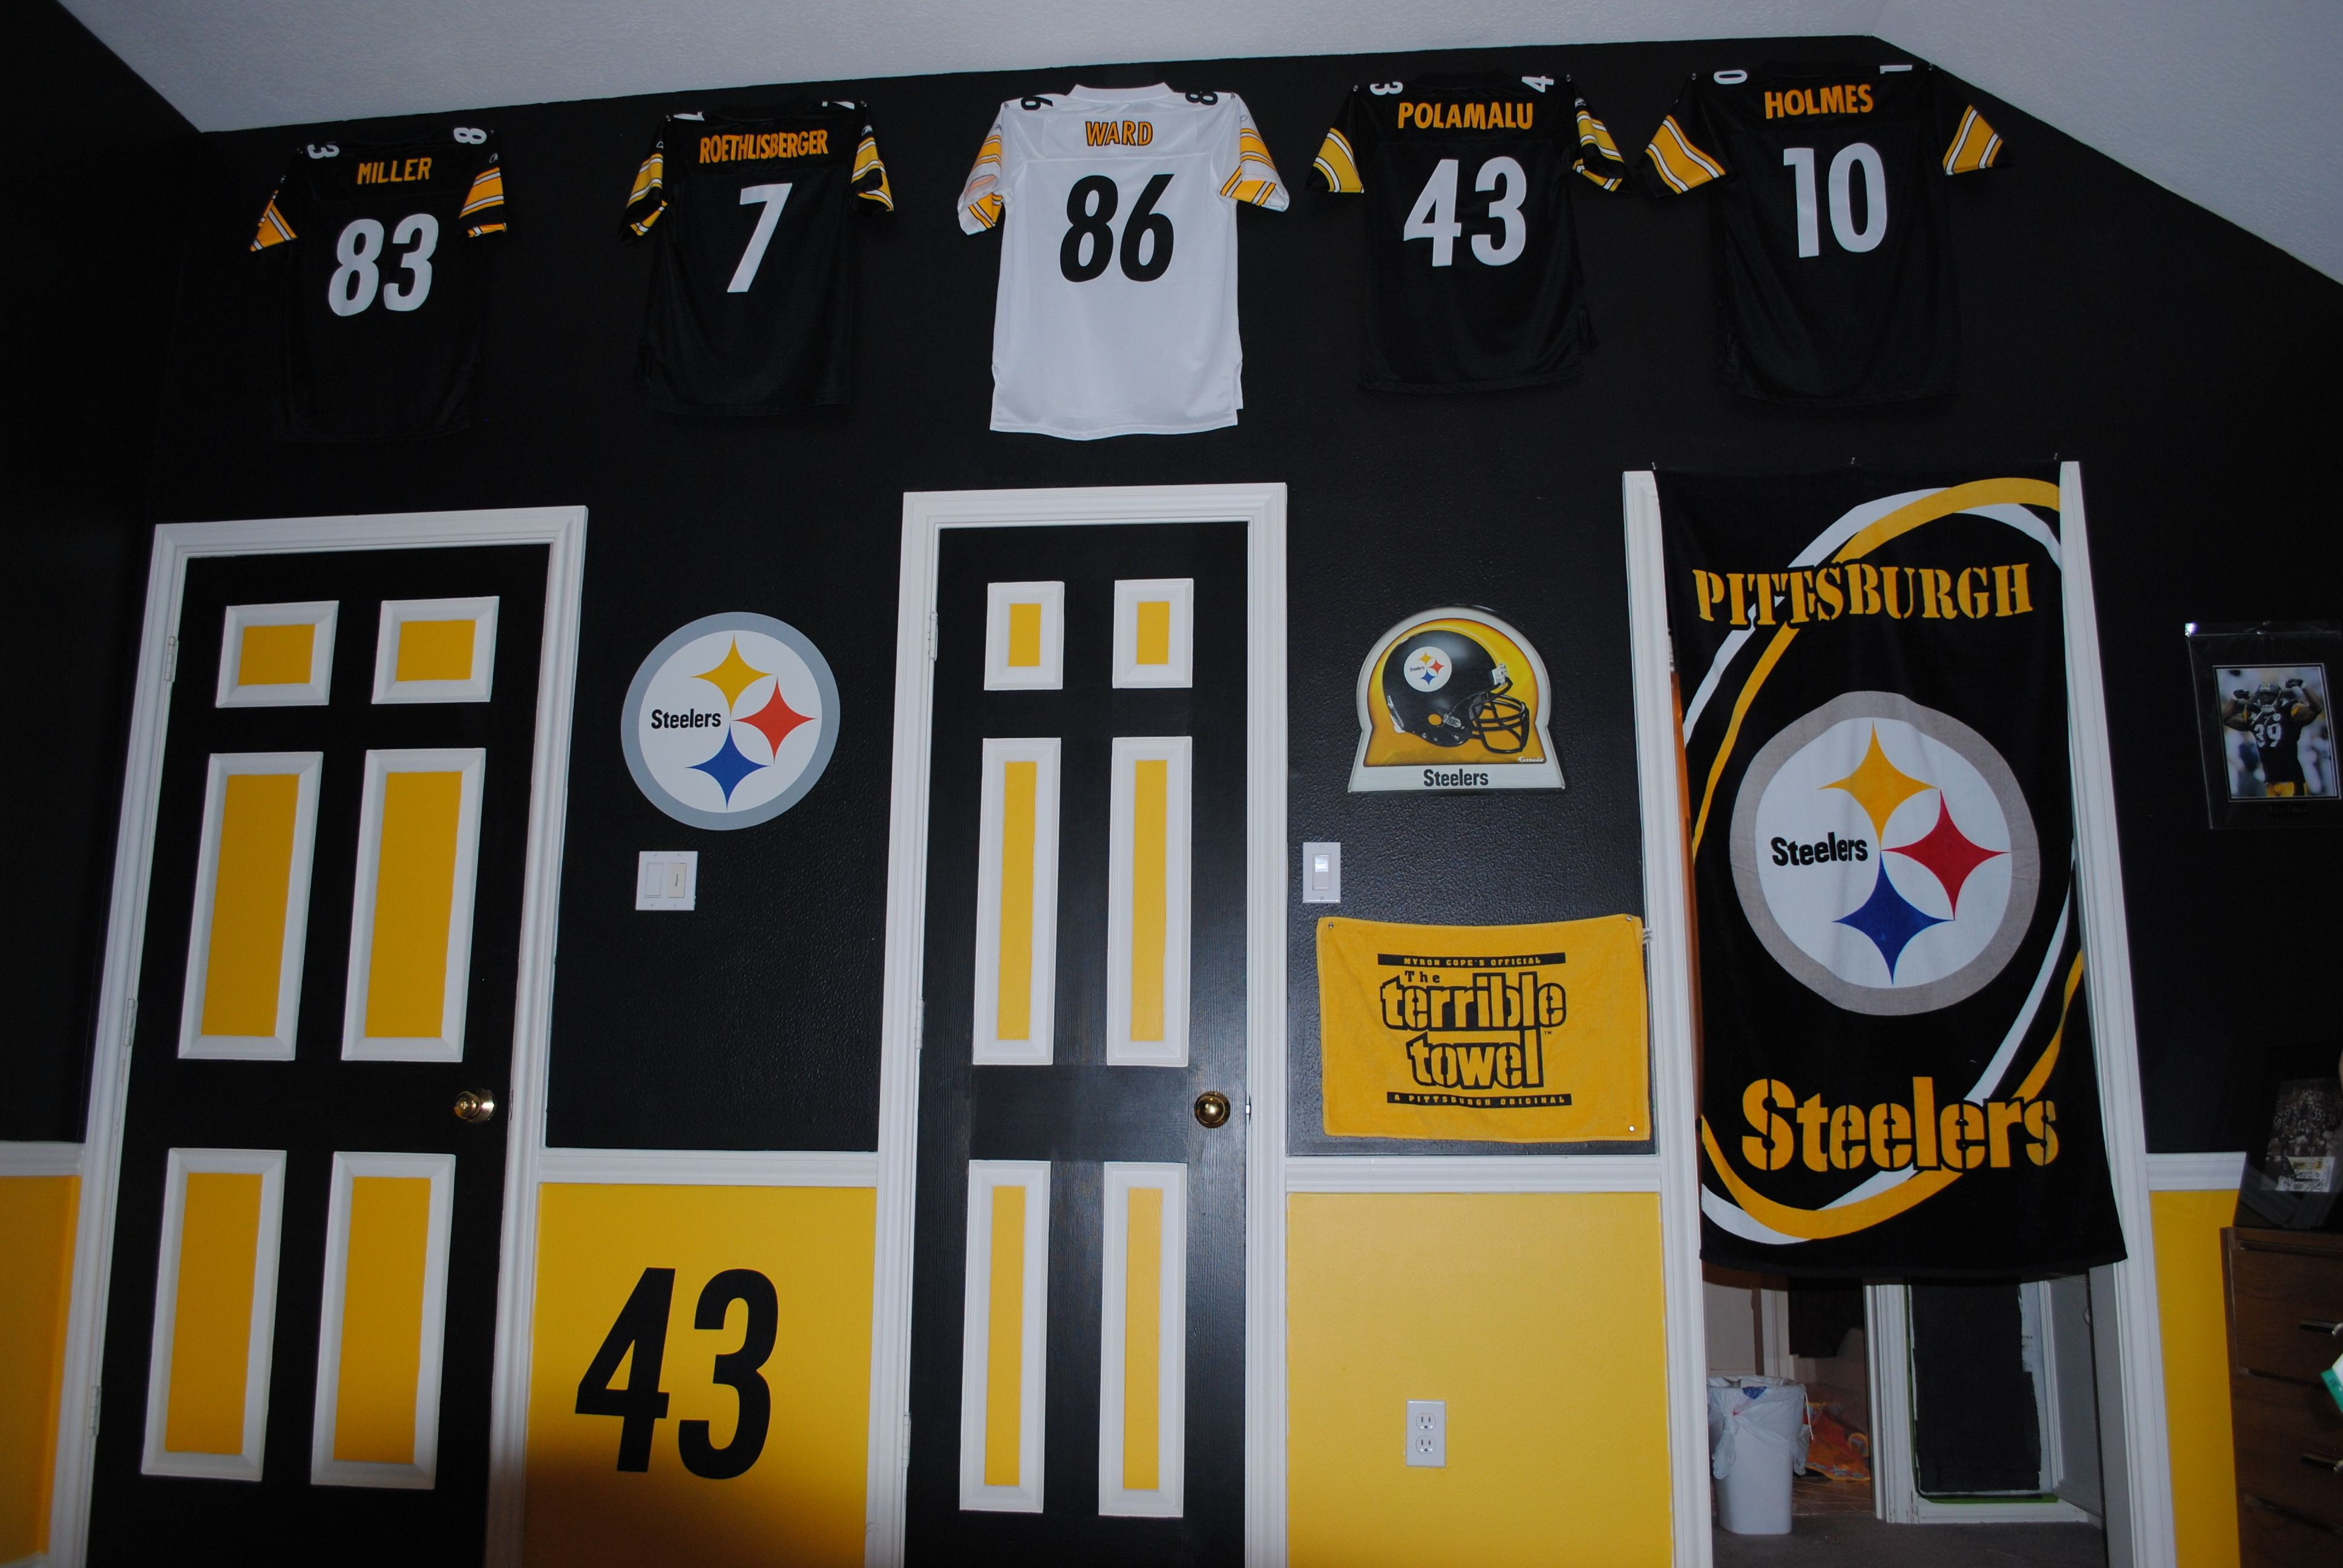 Steeler bedroom in Texas - Richmond, Texas, WTAE Channel 4